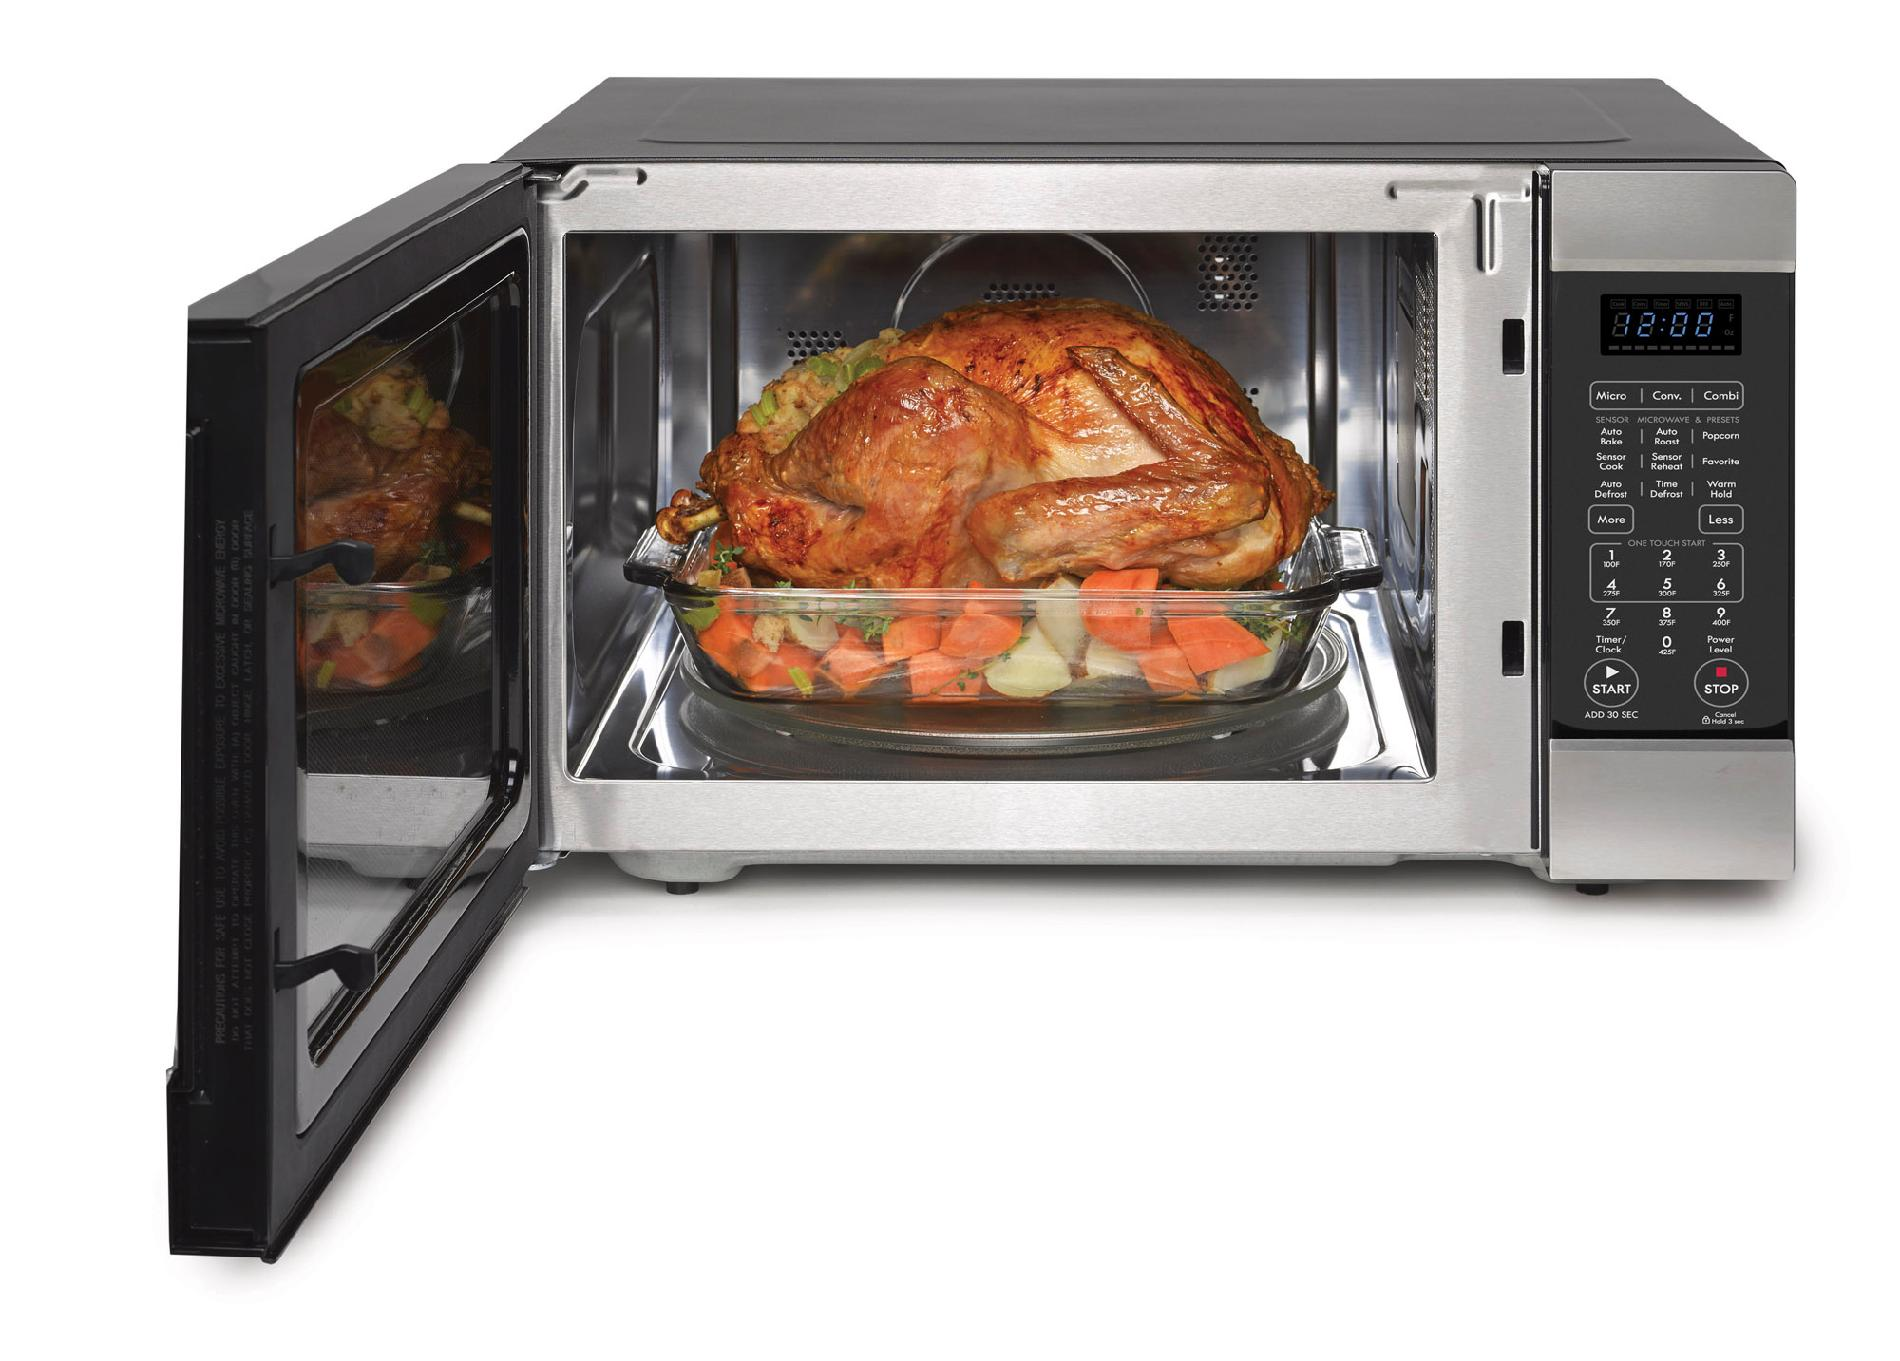 Kenmore Elite 1.5 cu. ft. Countertop Microwave w/ Convection - Stainless Steel